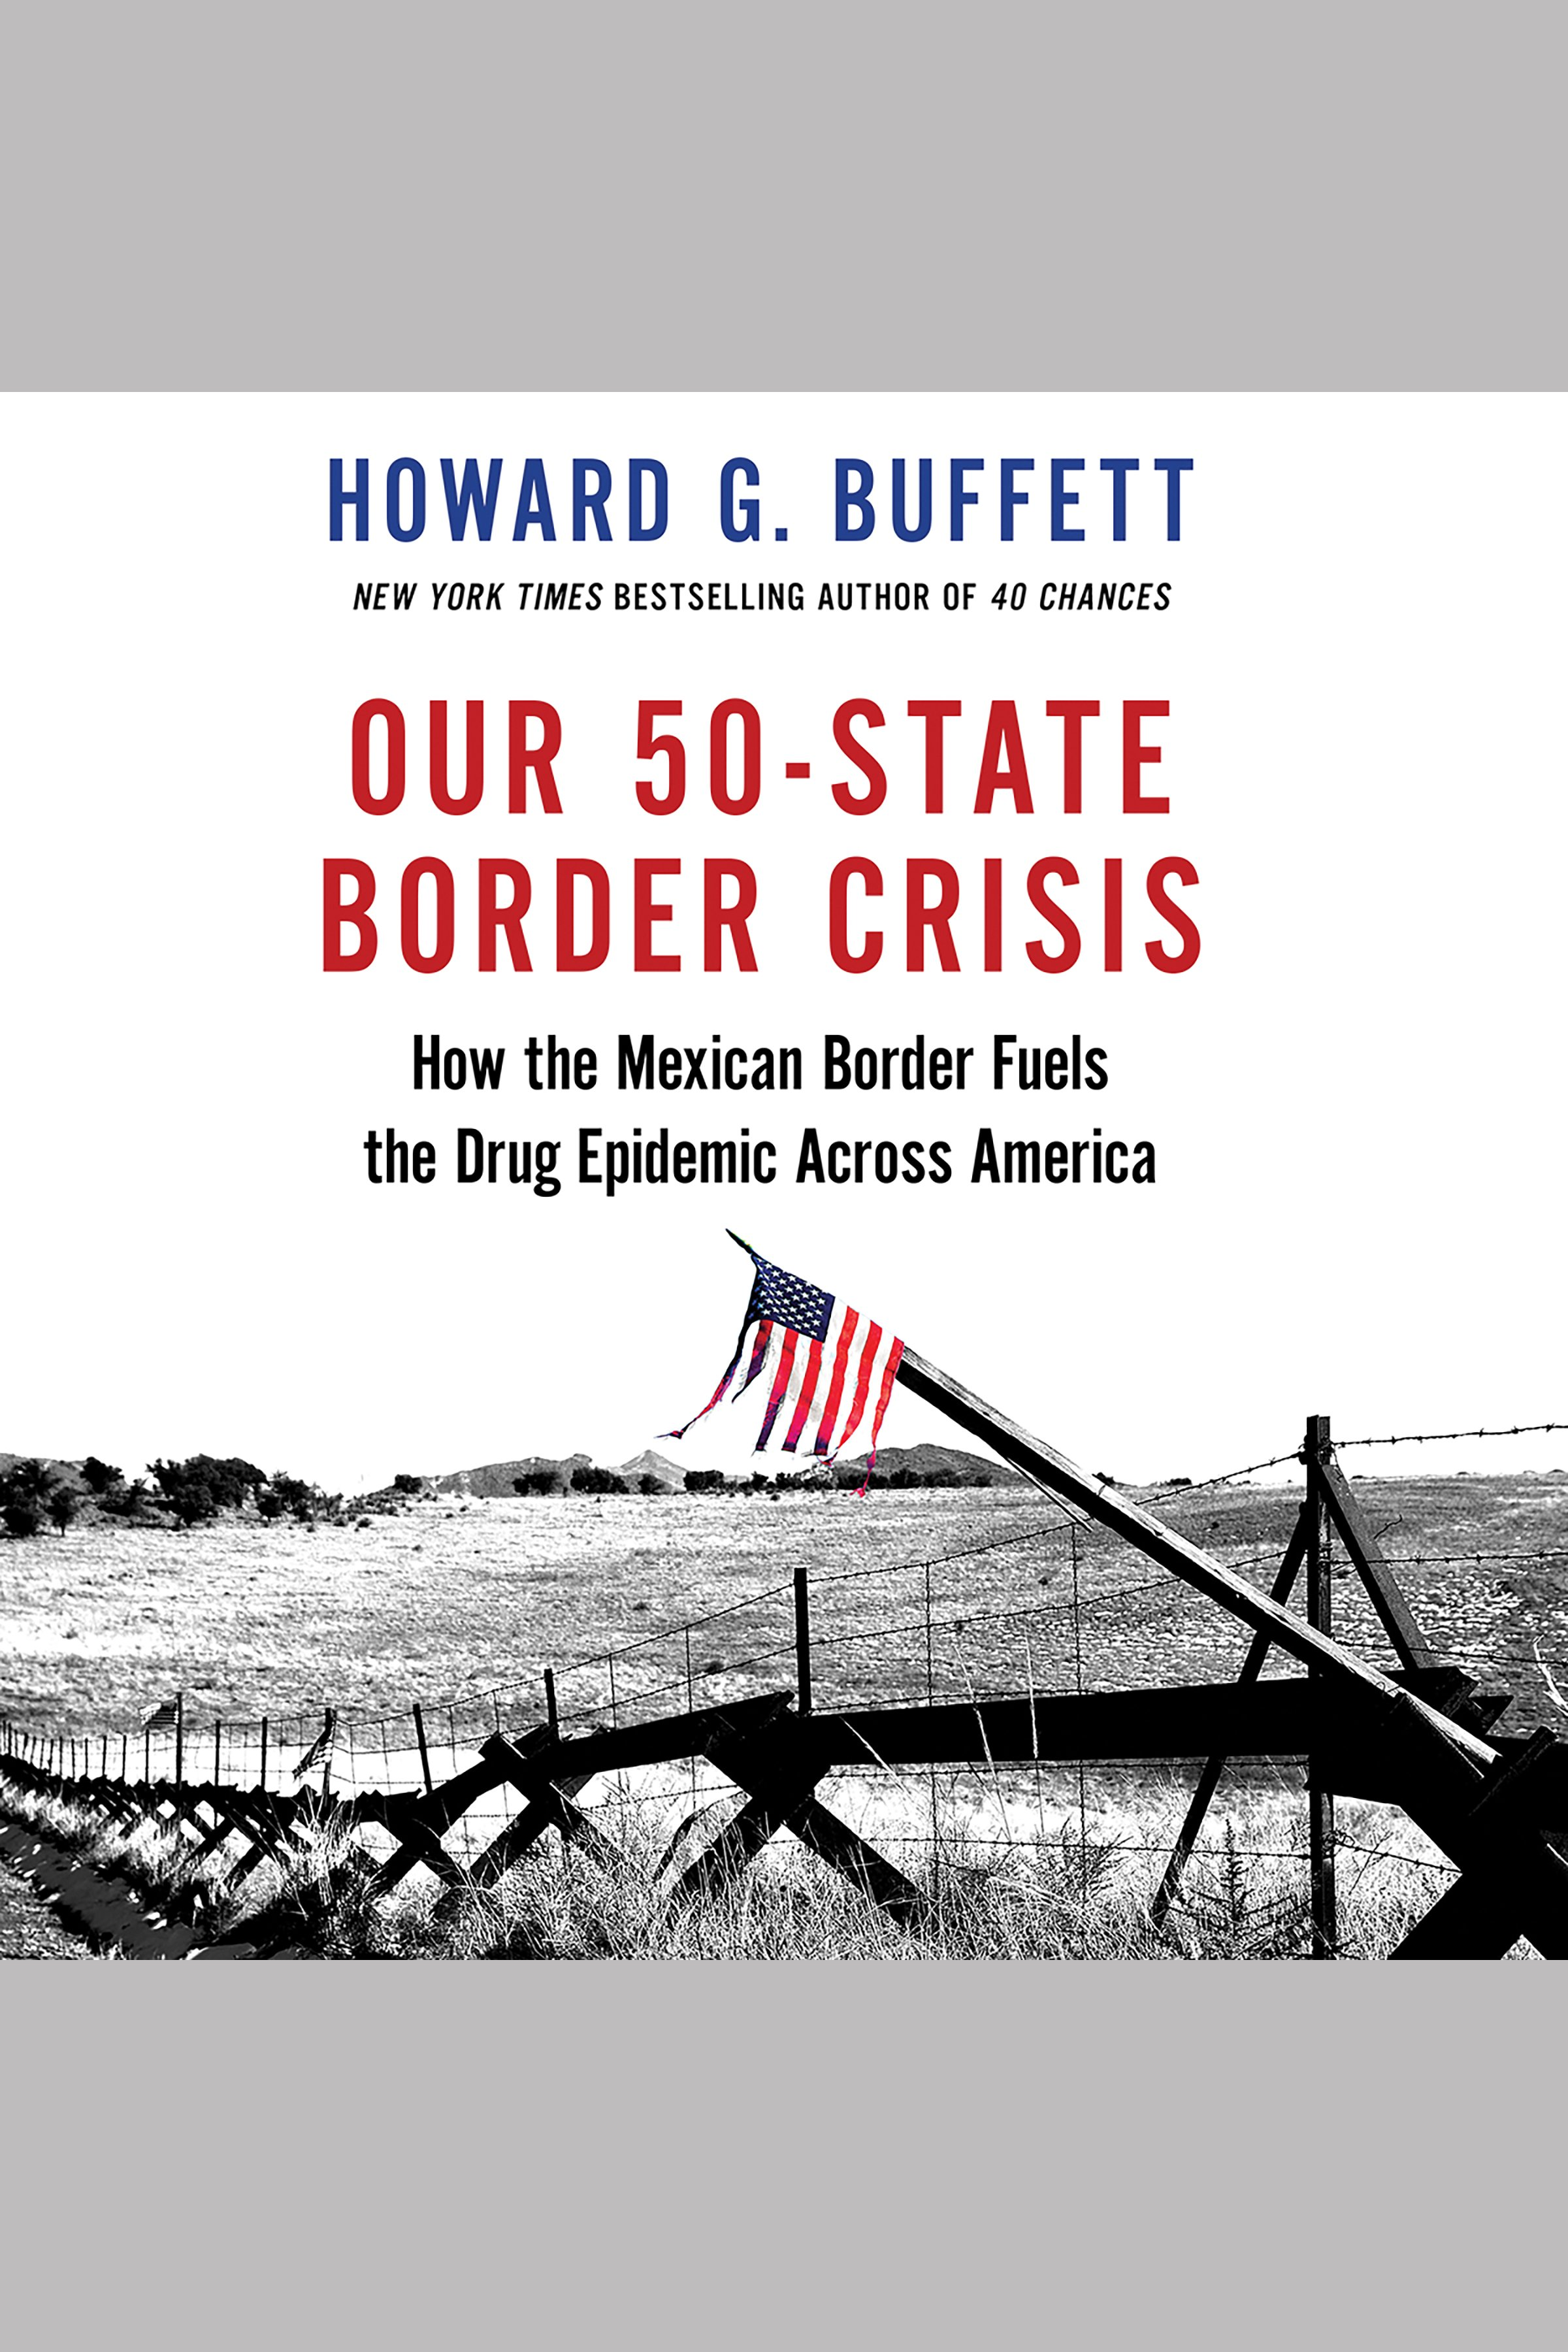 Our 50-State Border Crisis [EAUDIOBOOK]: How the Mexican Border Fuels the Drug Epidemic Across America